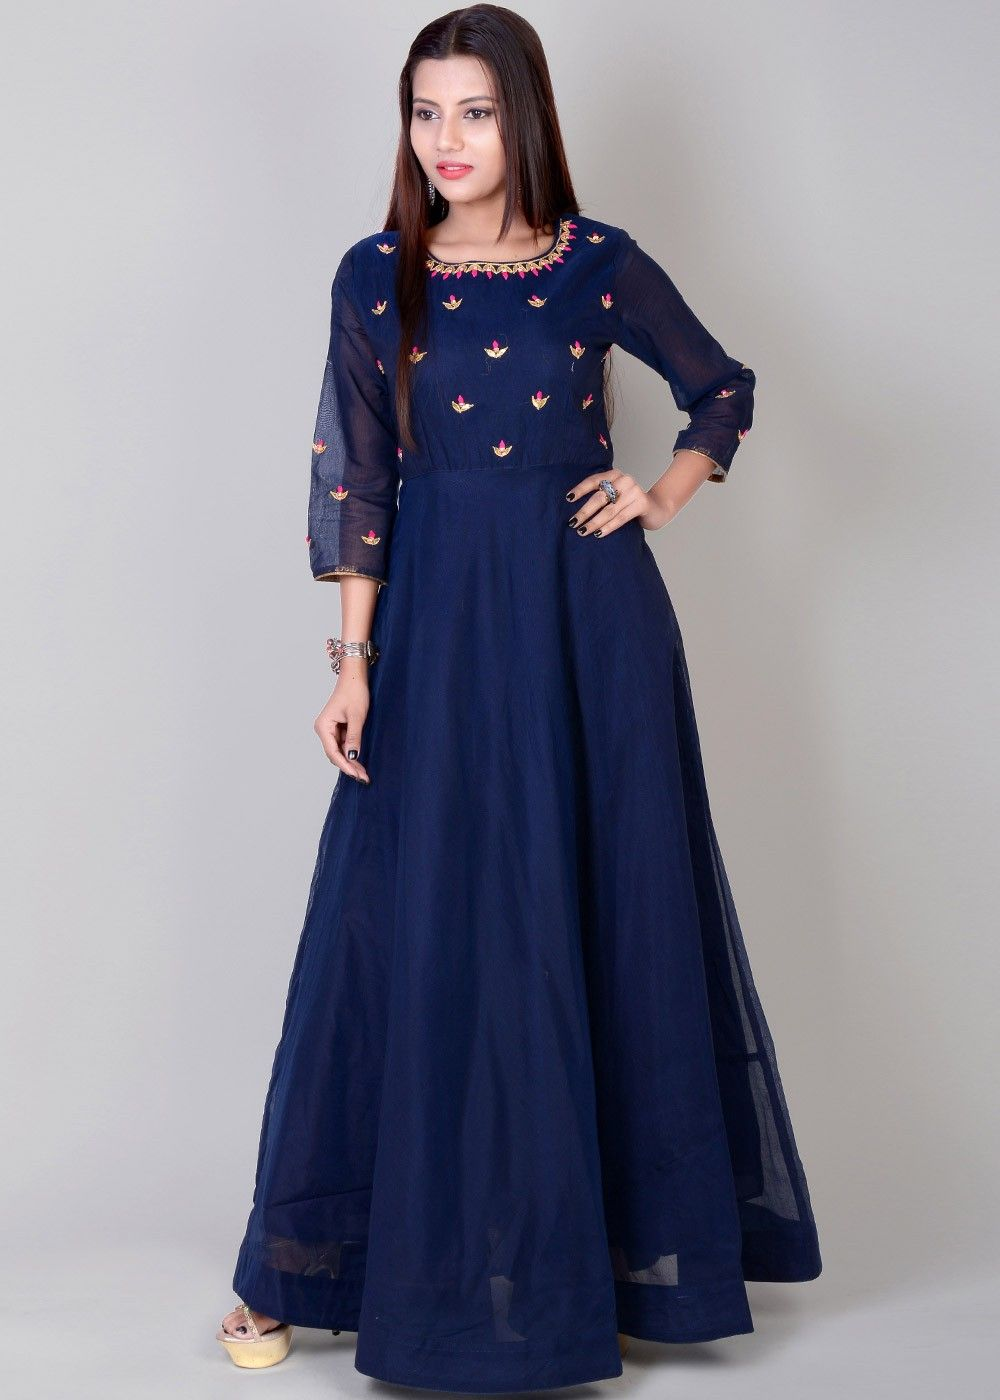 d806c5f022 Readymade #Blue Indian #Gown in #Chanderi Fabric   Traditional Twist ...